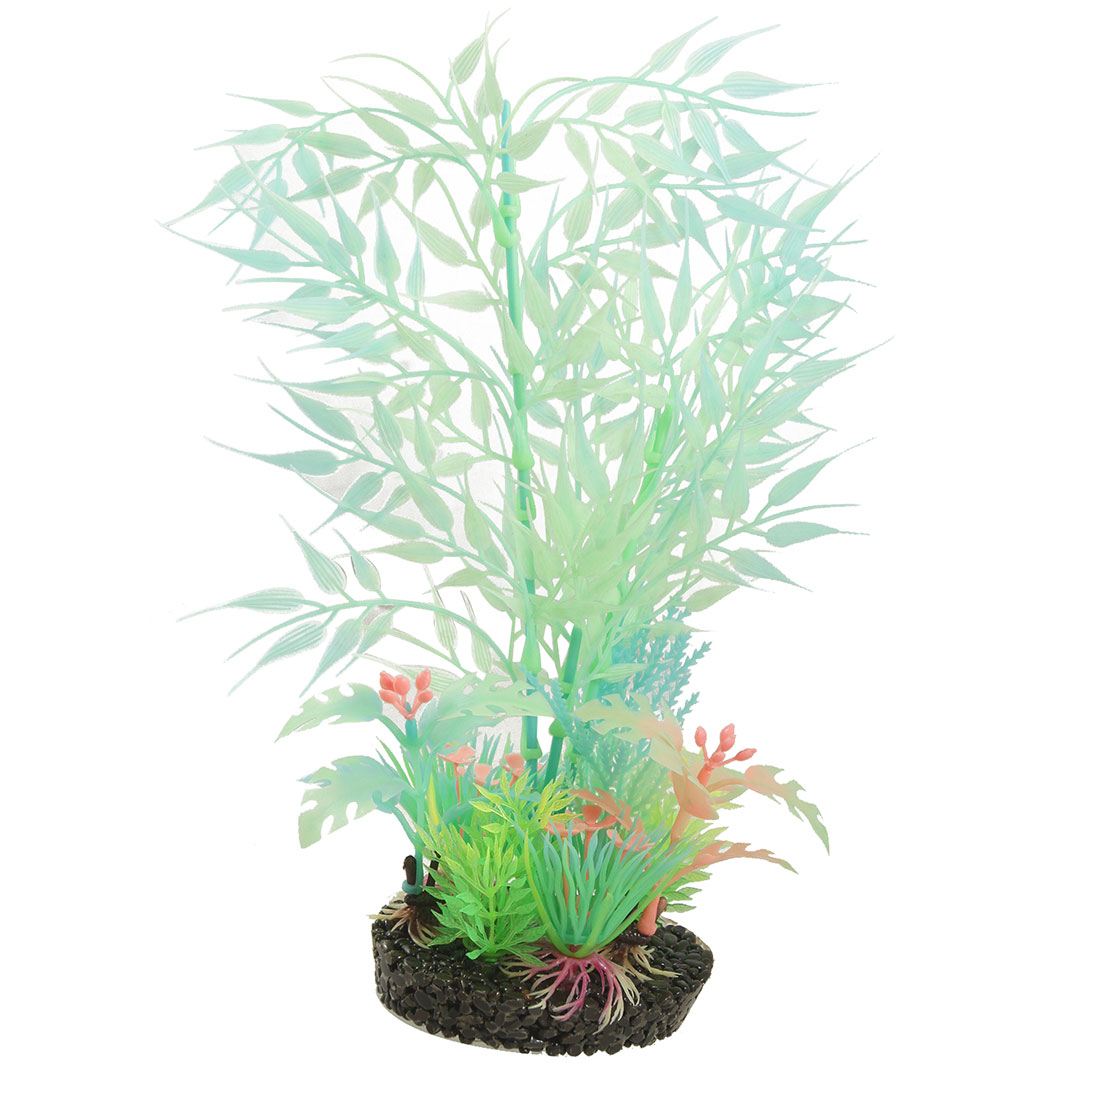 Aquarium Fish Tank Fluorescent Plastic Plants w Ceramic Base